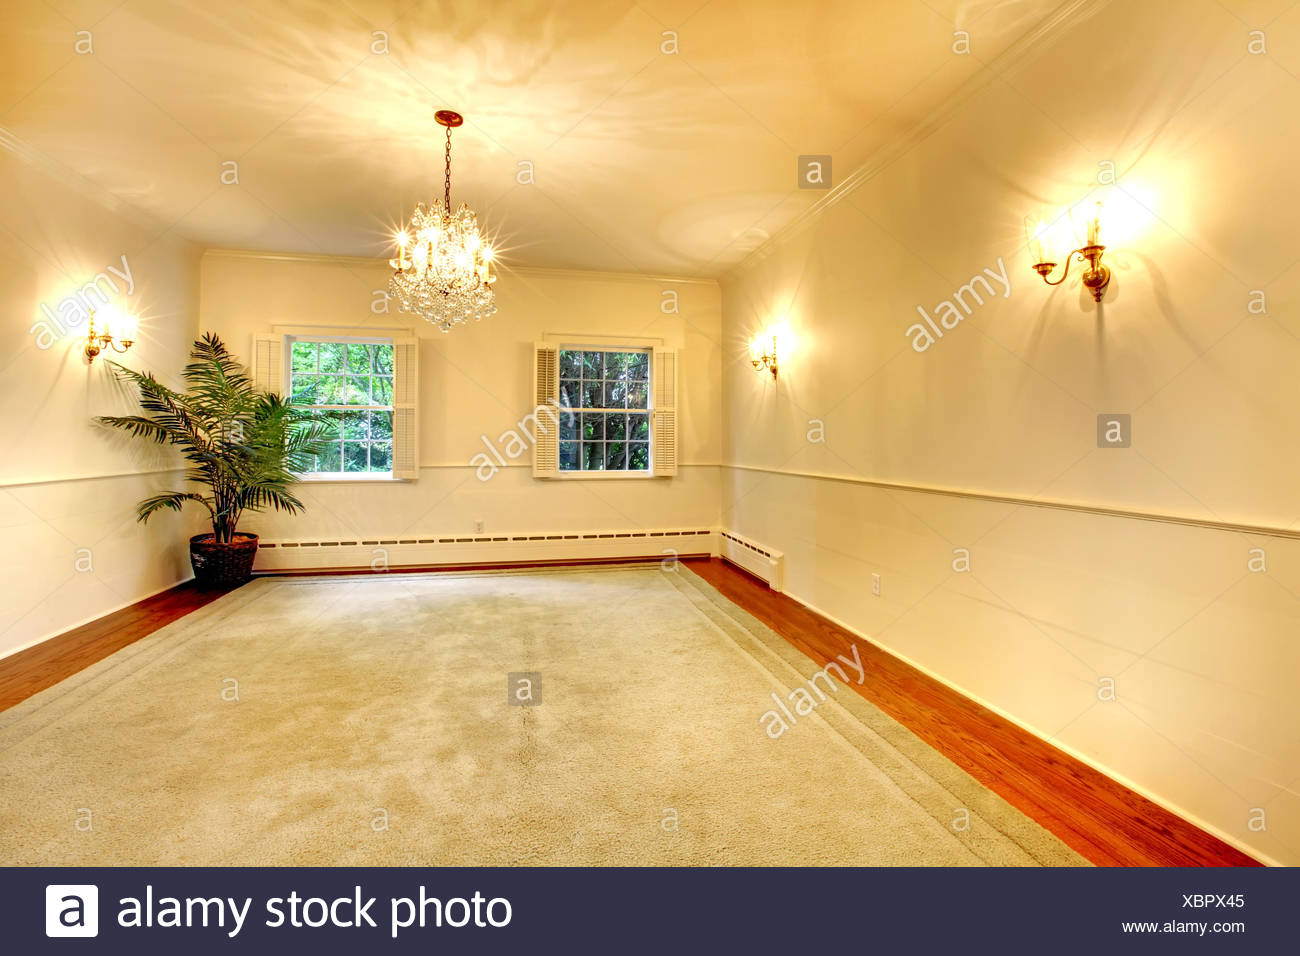 Empty luury antique large dining room interior with white walls ...